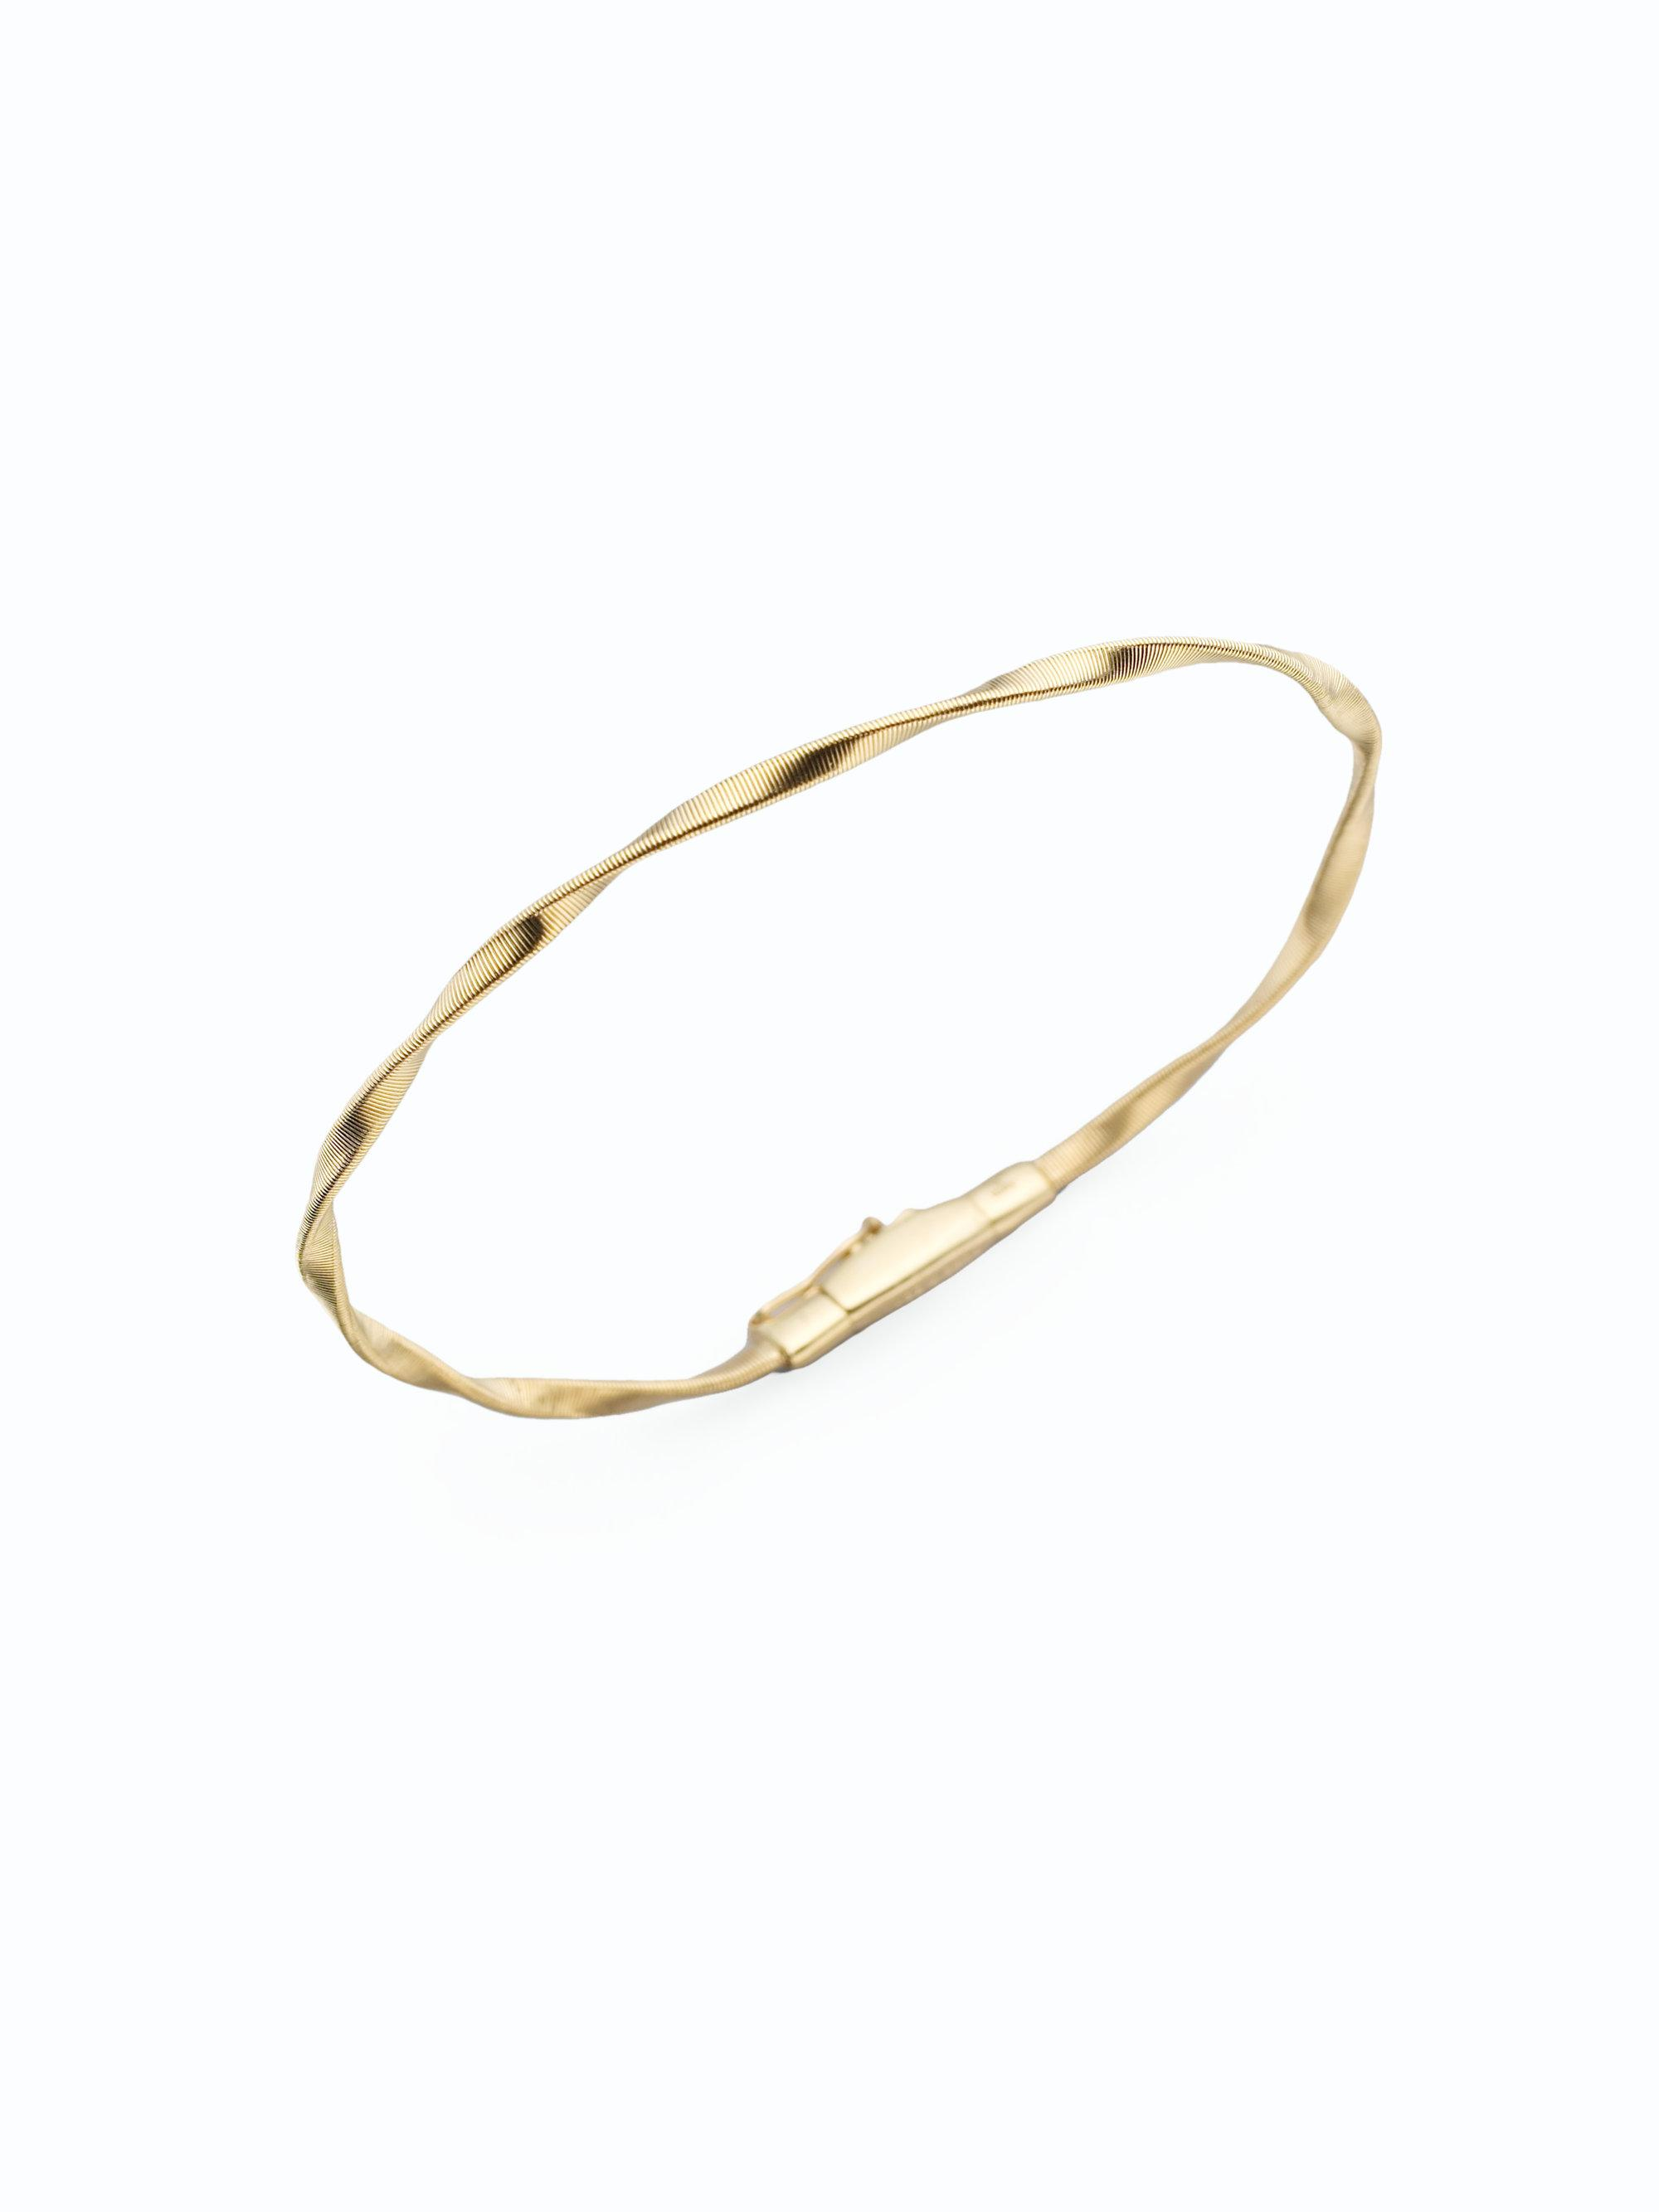 operandi dezso large full gold beltran sara bracelet screen cuff moda by fallwinter n chione emerald beltr